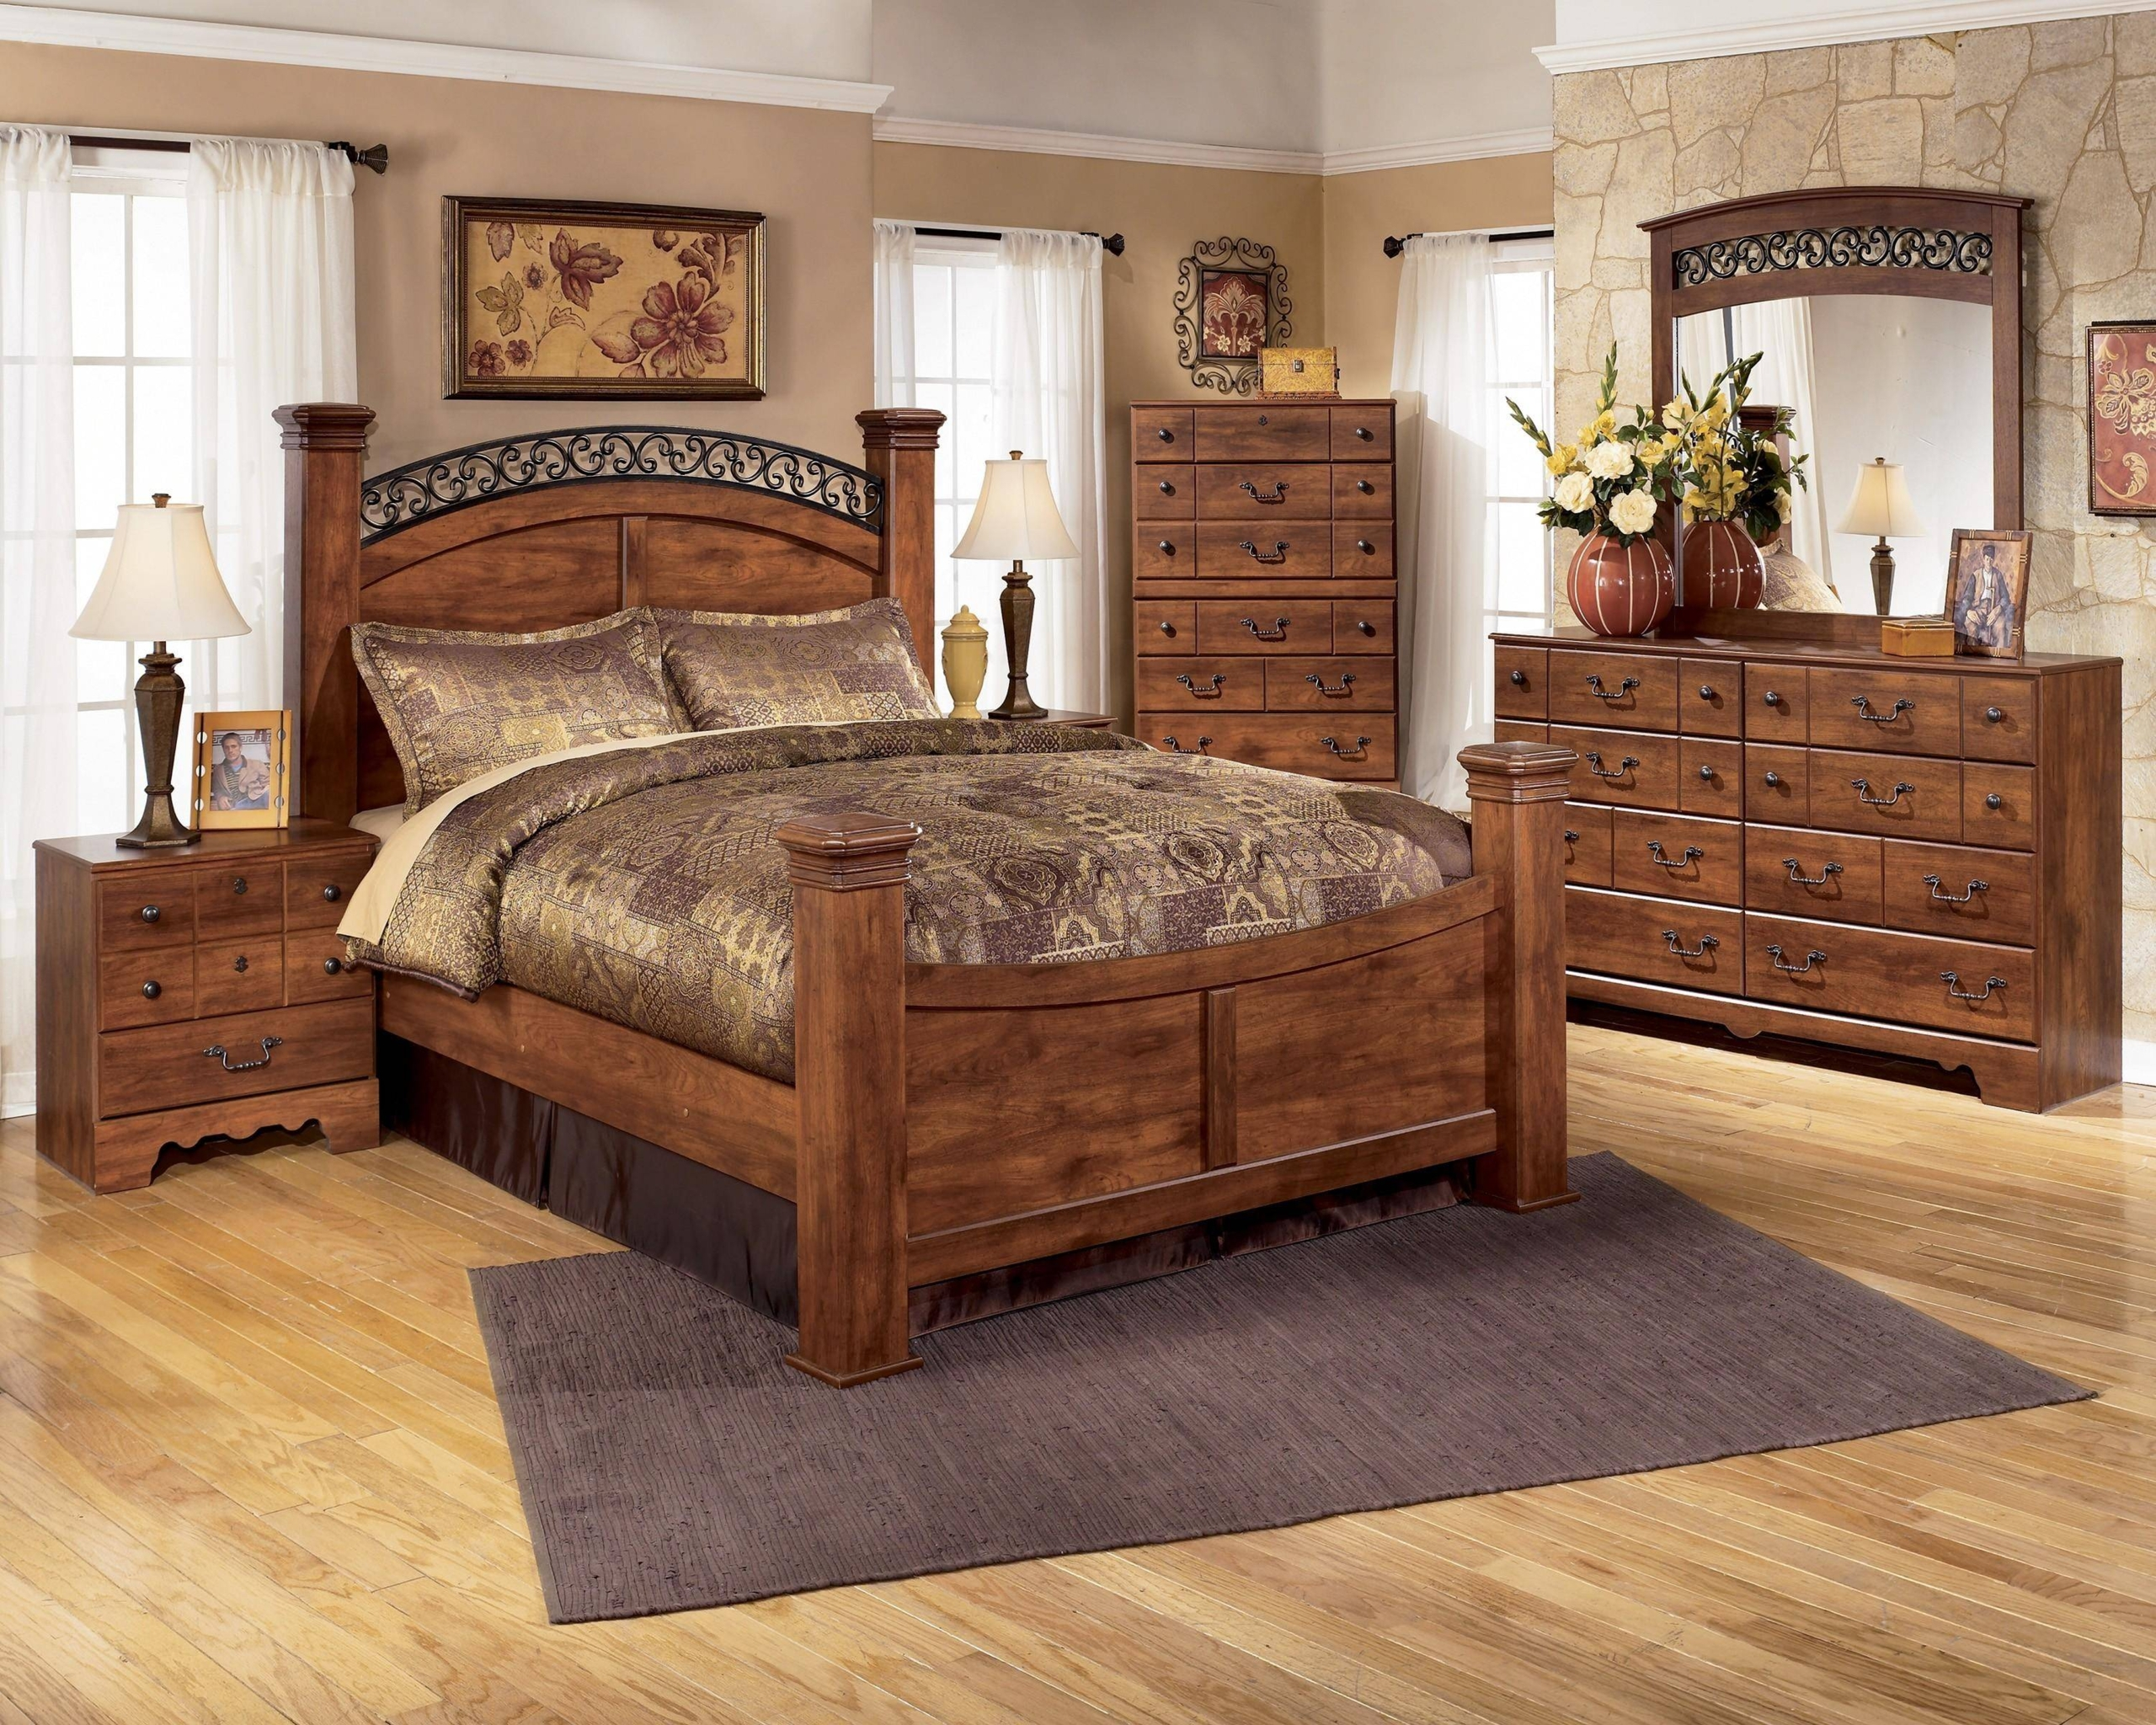 Excellent Wood Bedroom Sets Style